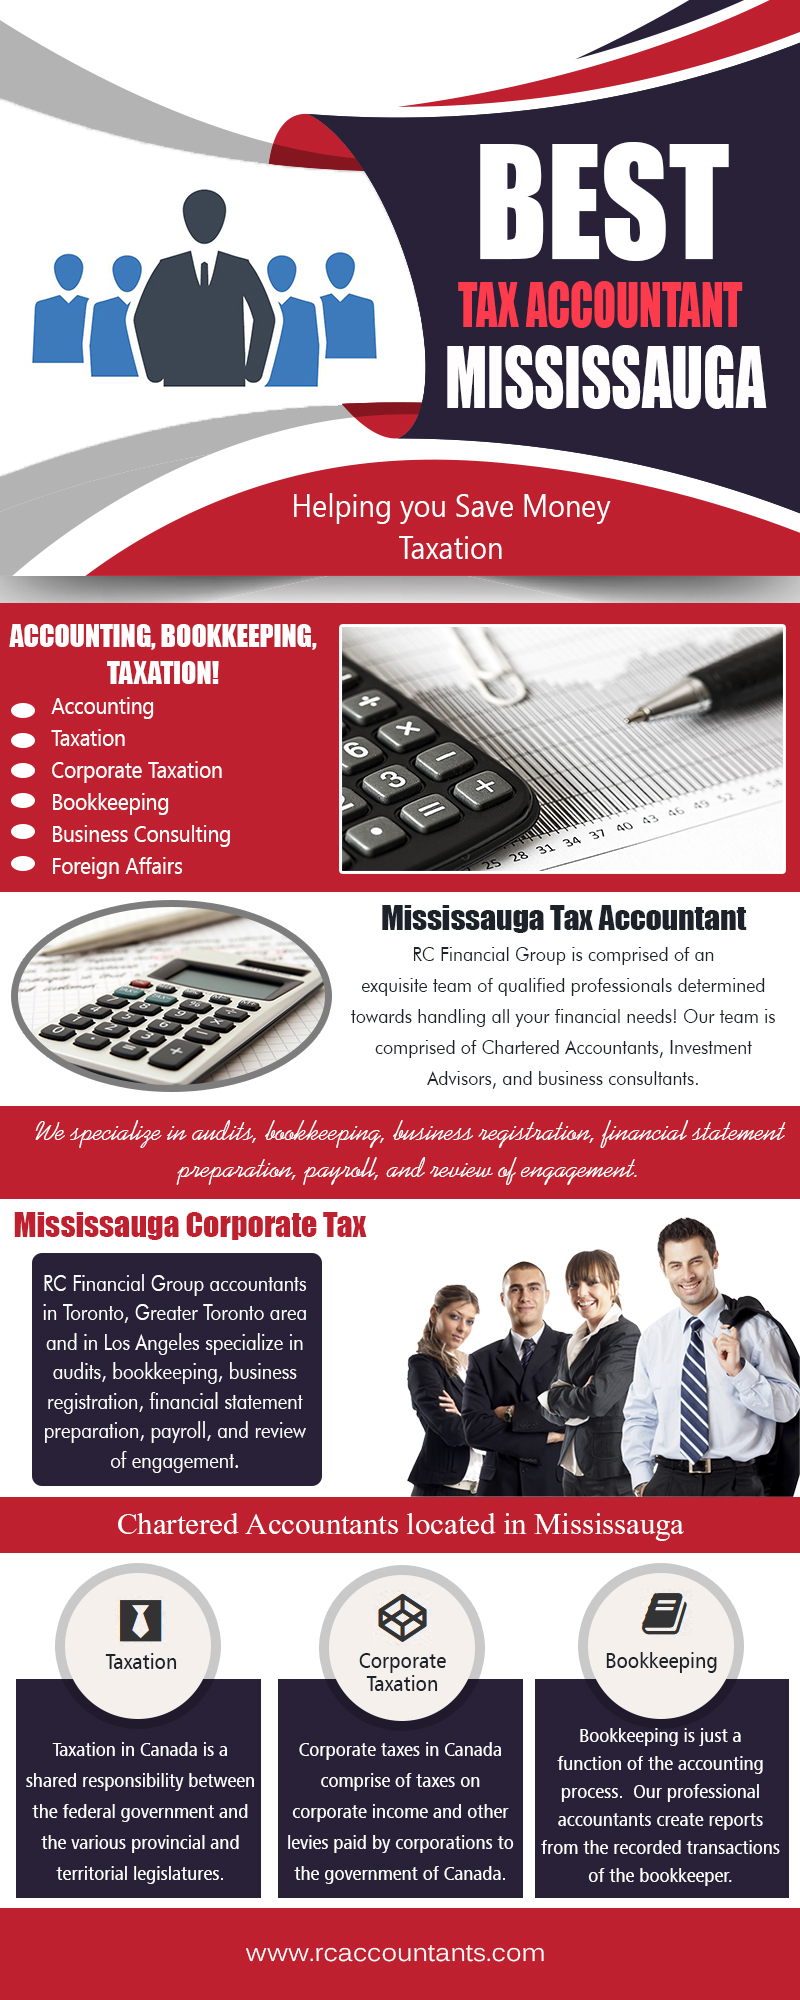 Best Tax Accountant Mississauga